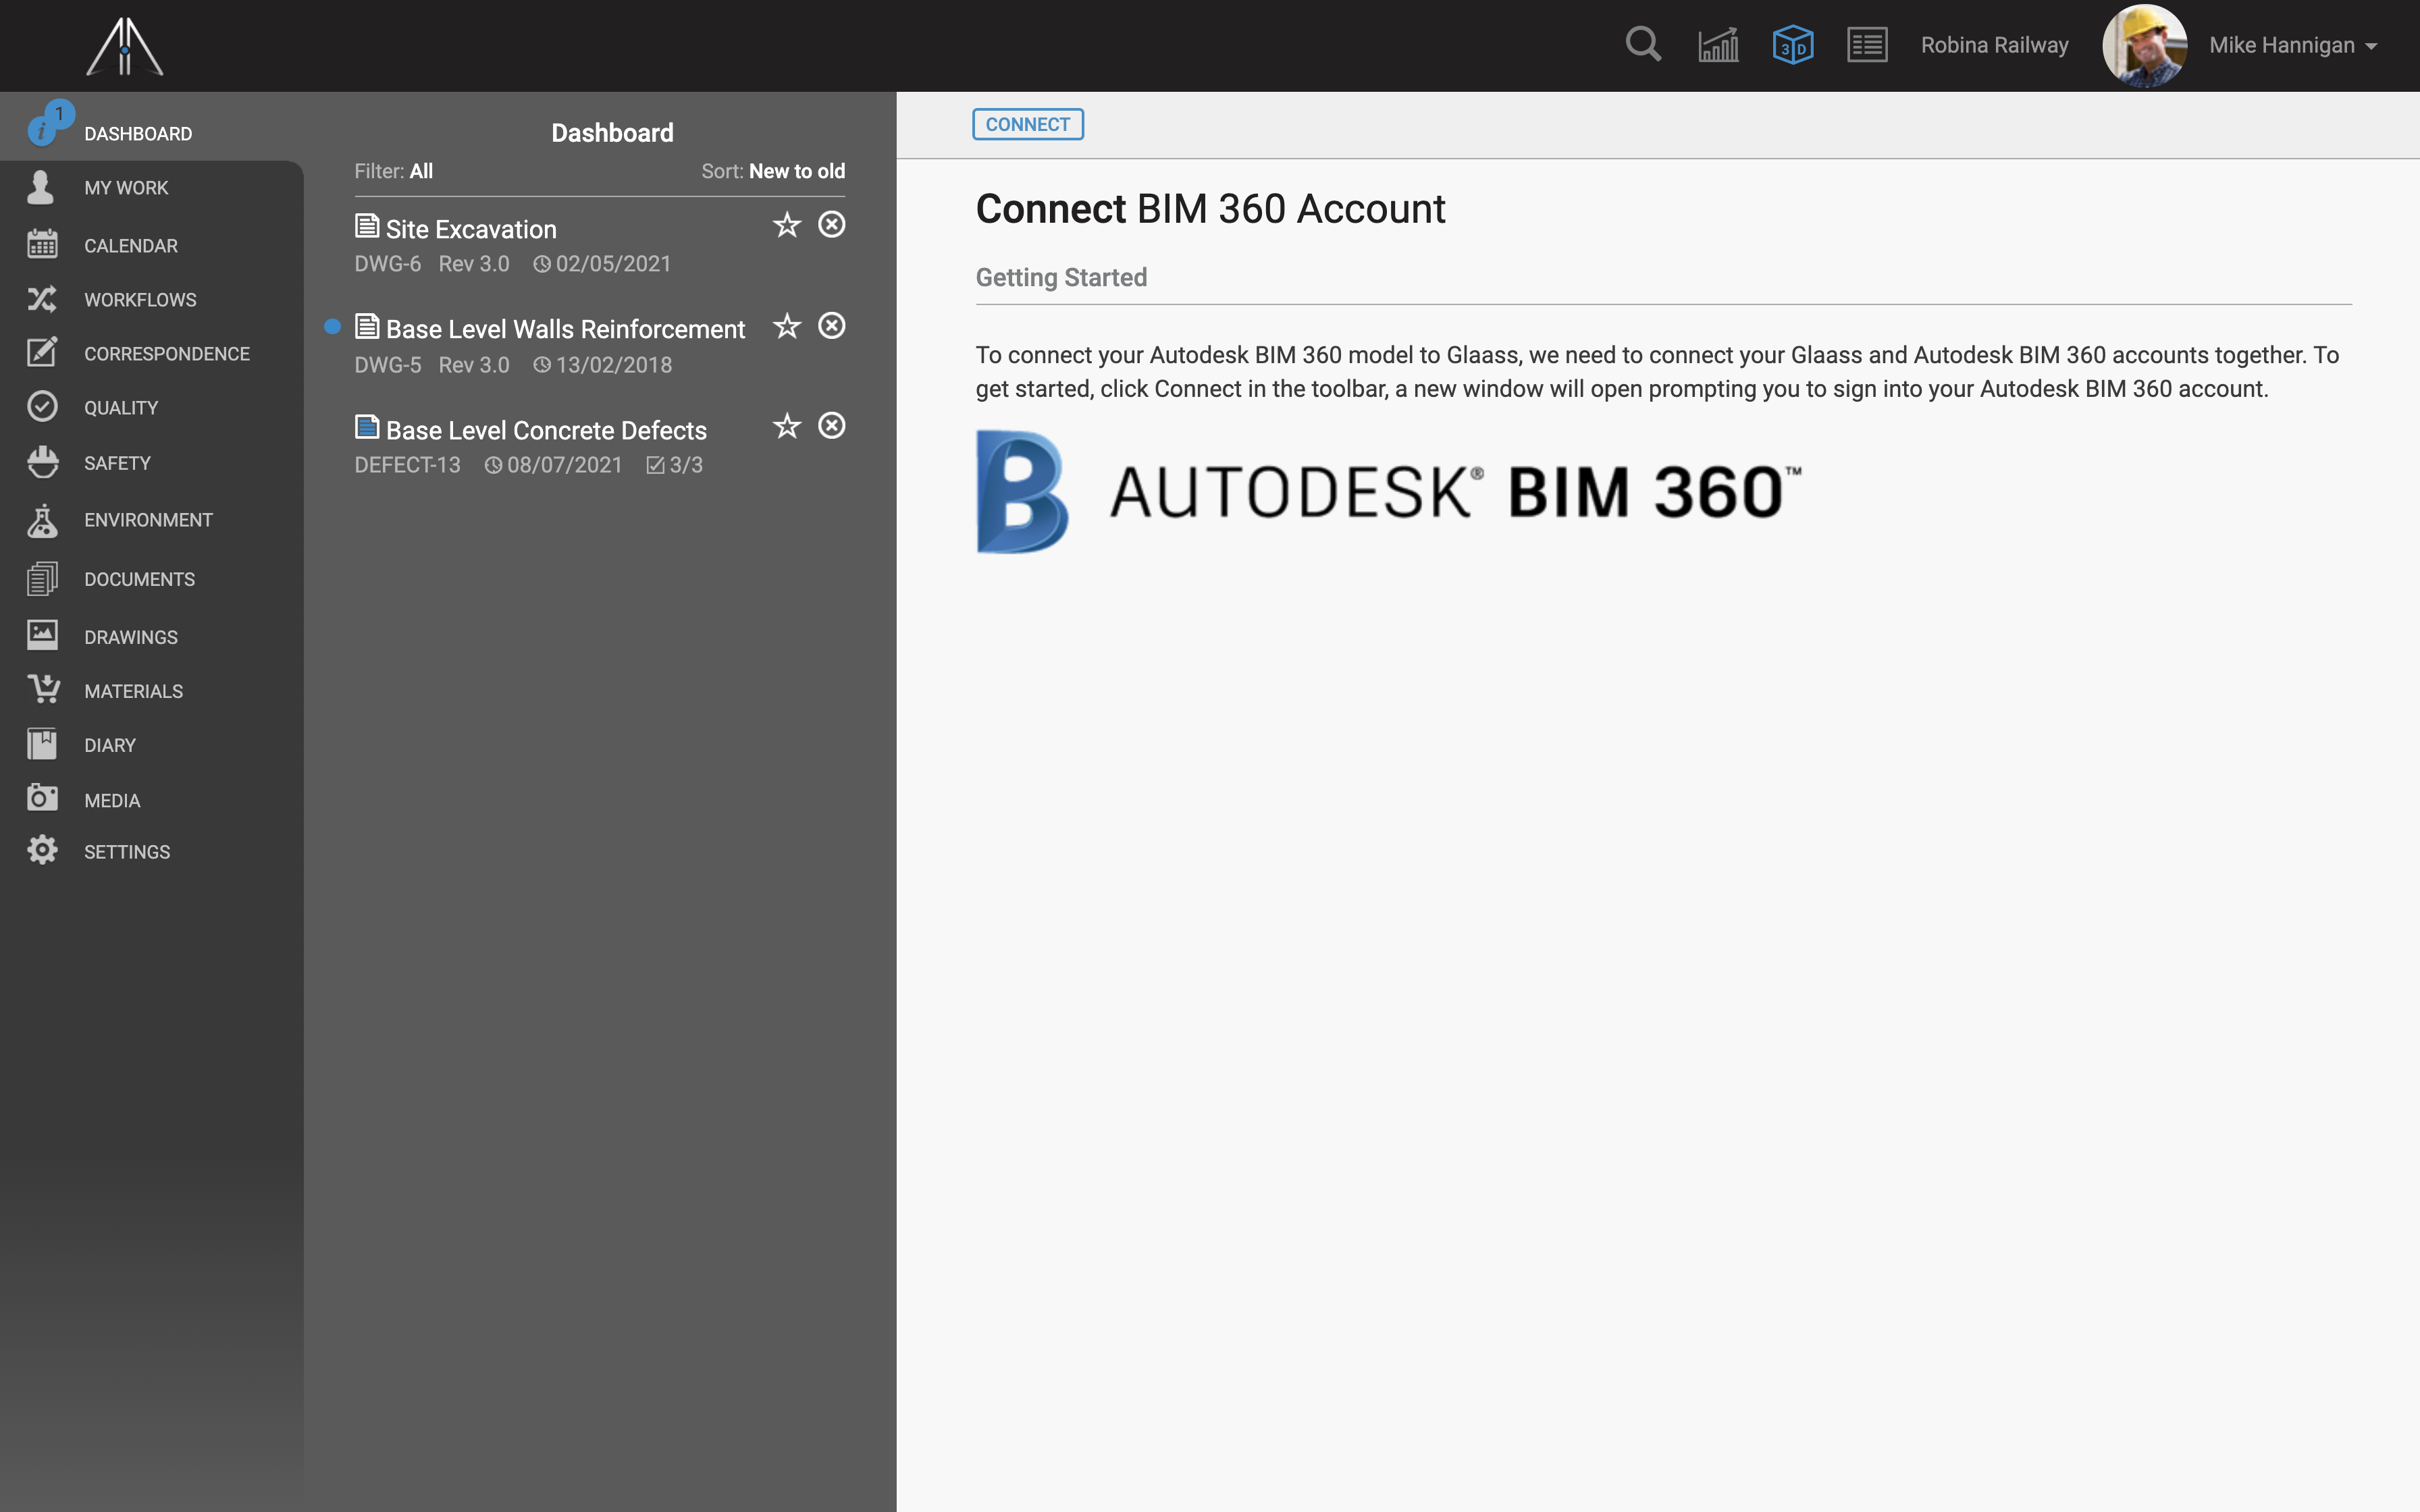 Start with connecting Autodesk and Glaass accounts